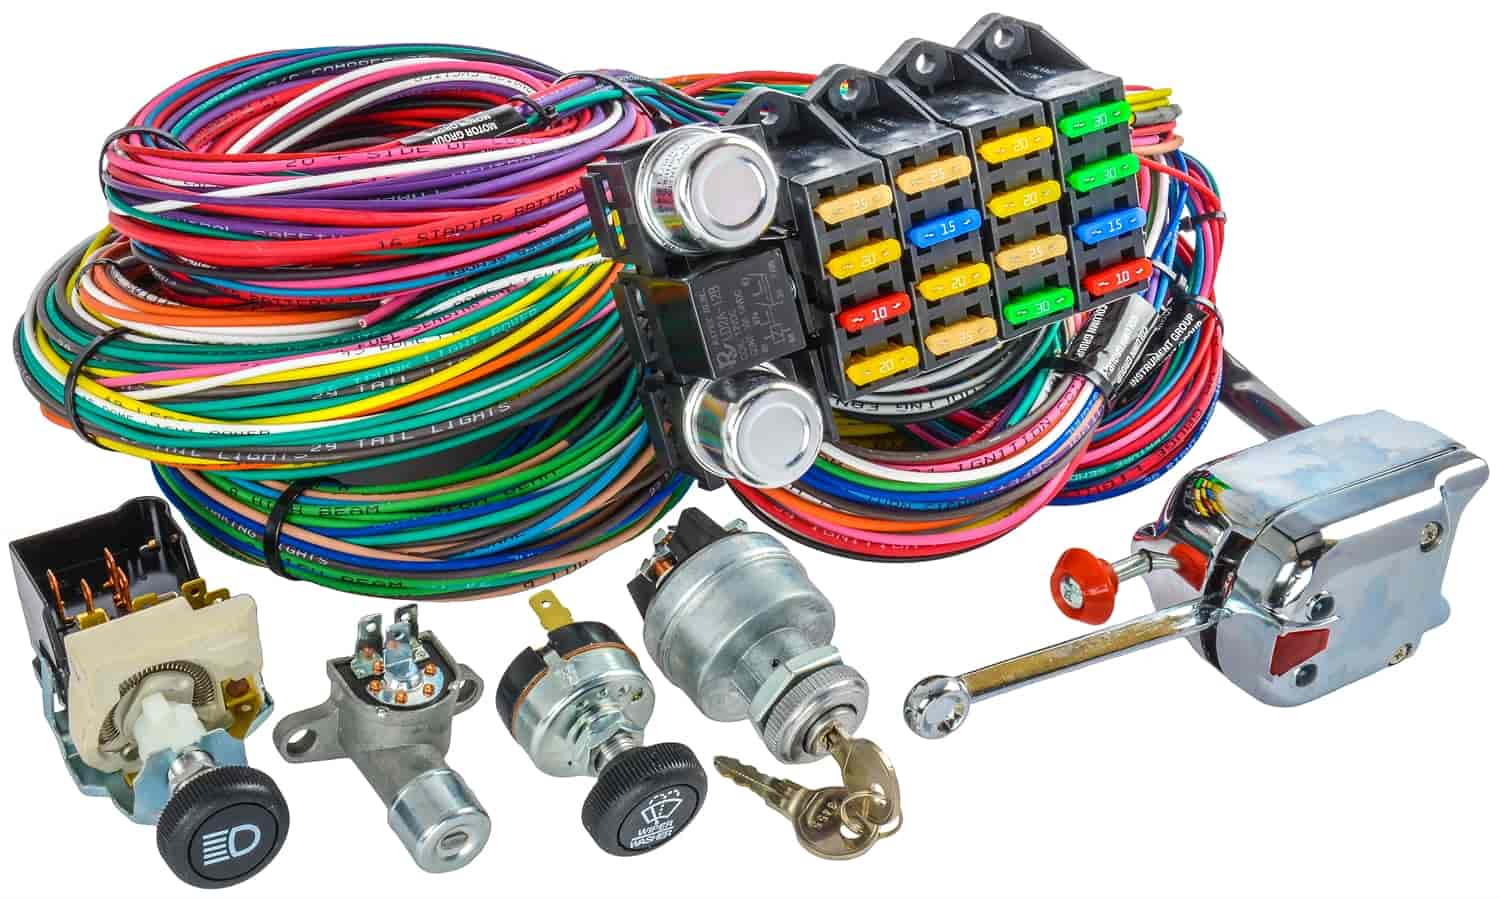 555 10405k jegs performance products 10405k universal wiring harness jegs universal wiring harness at n-0.co